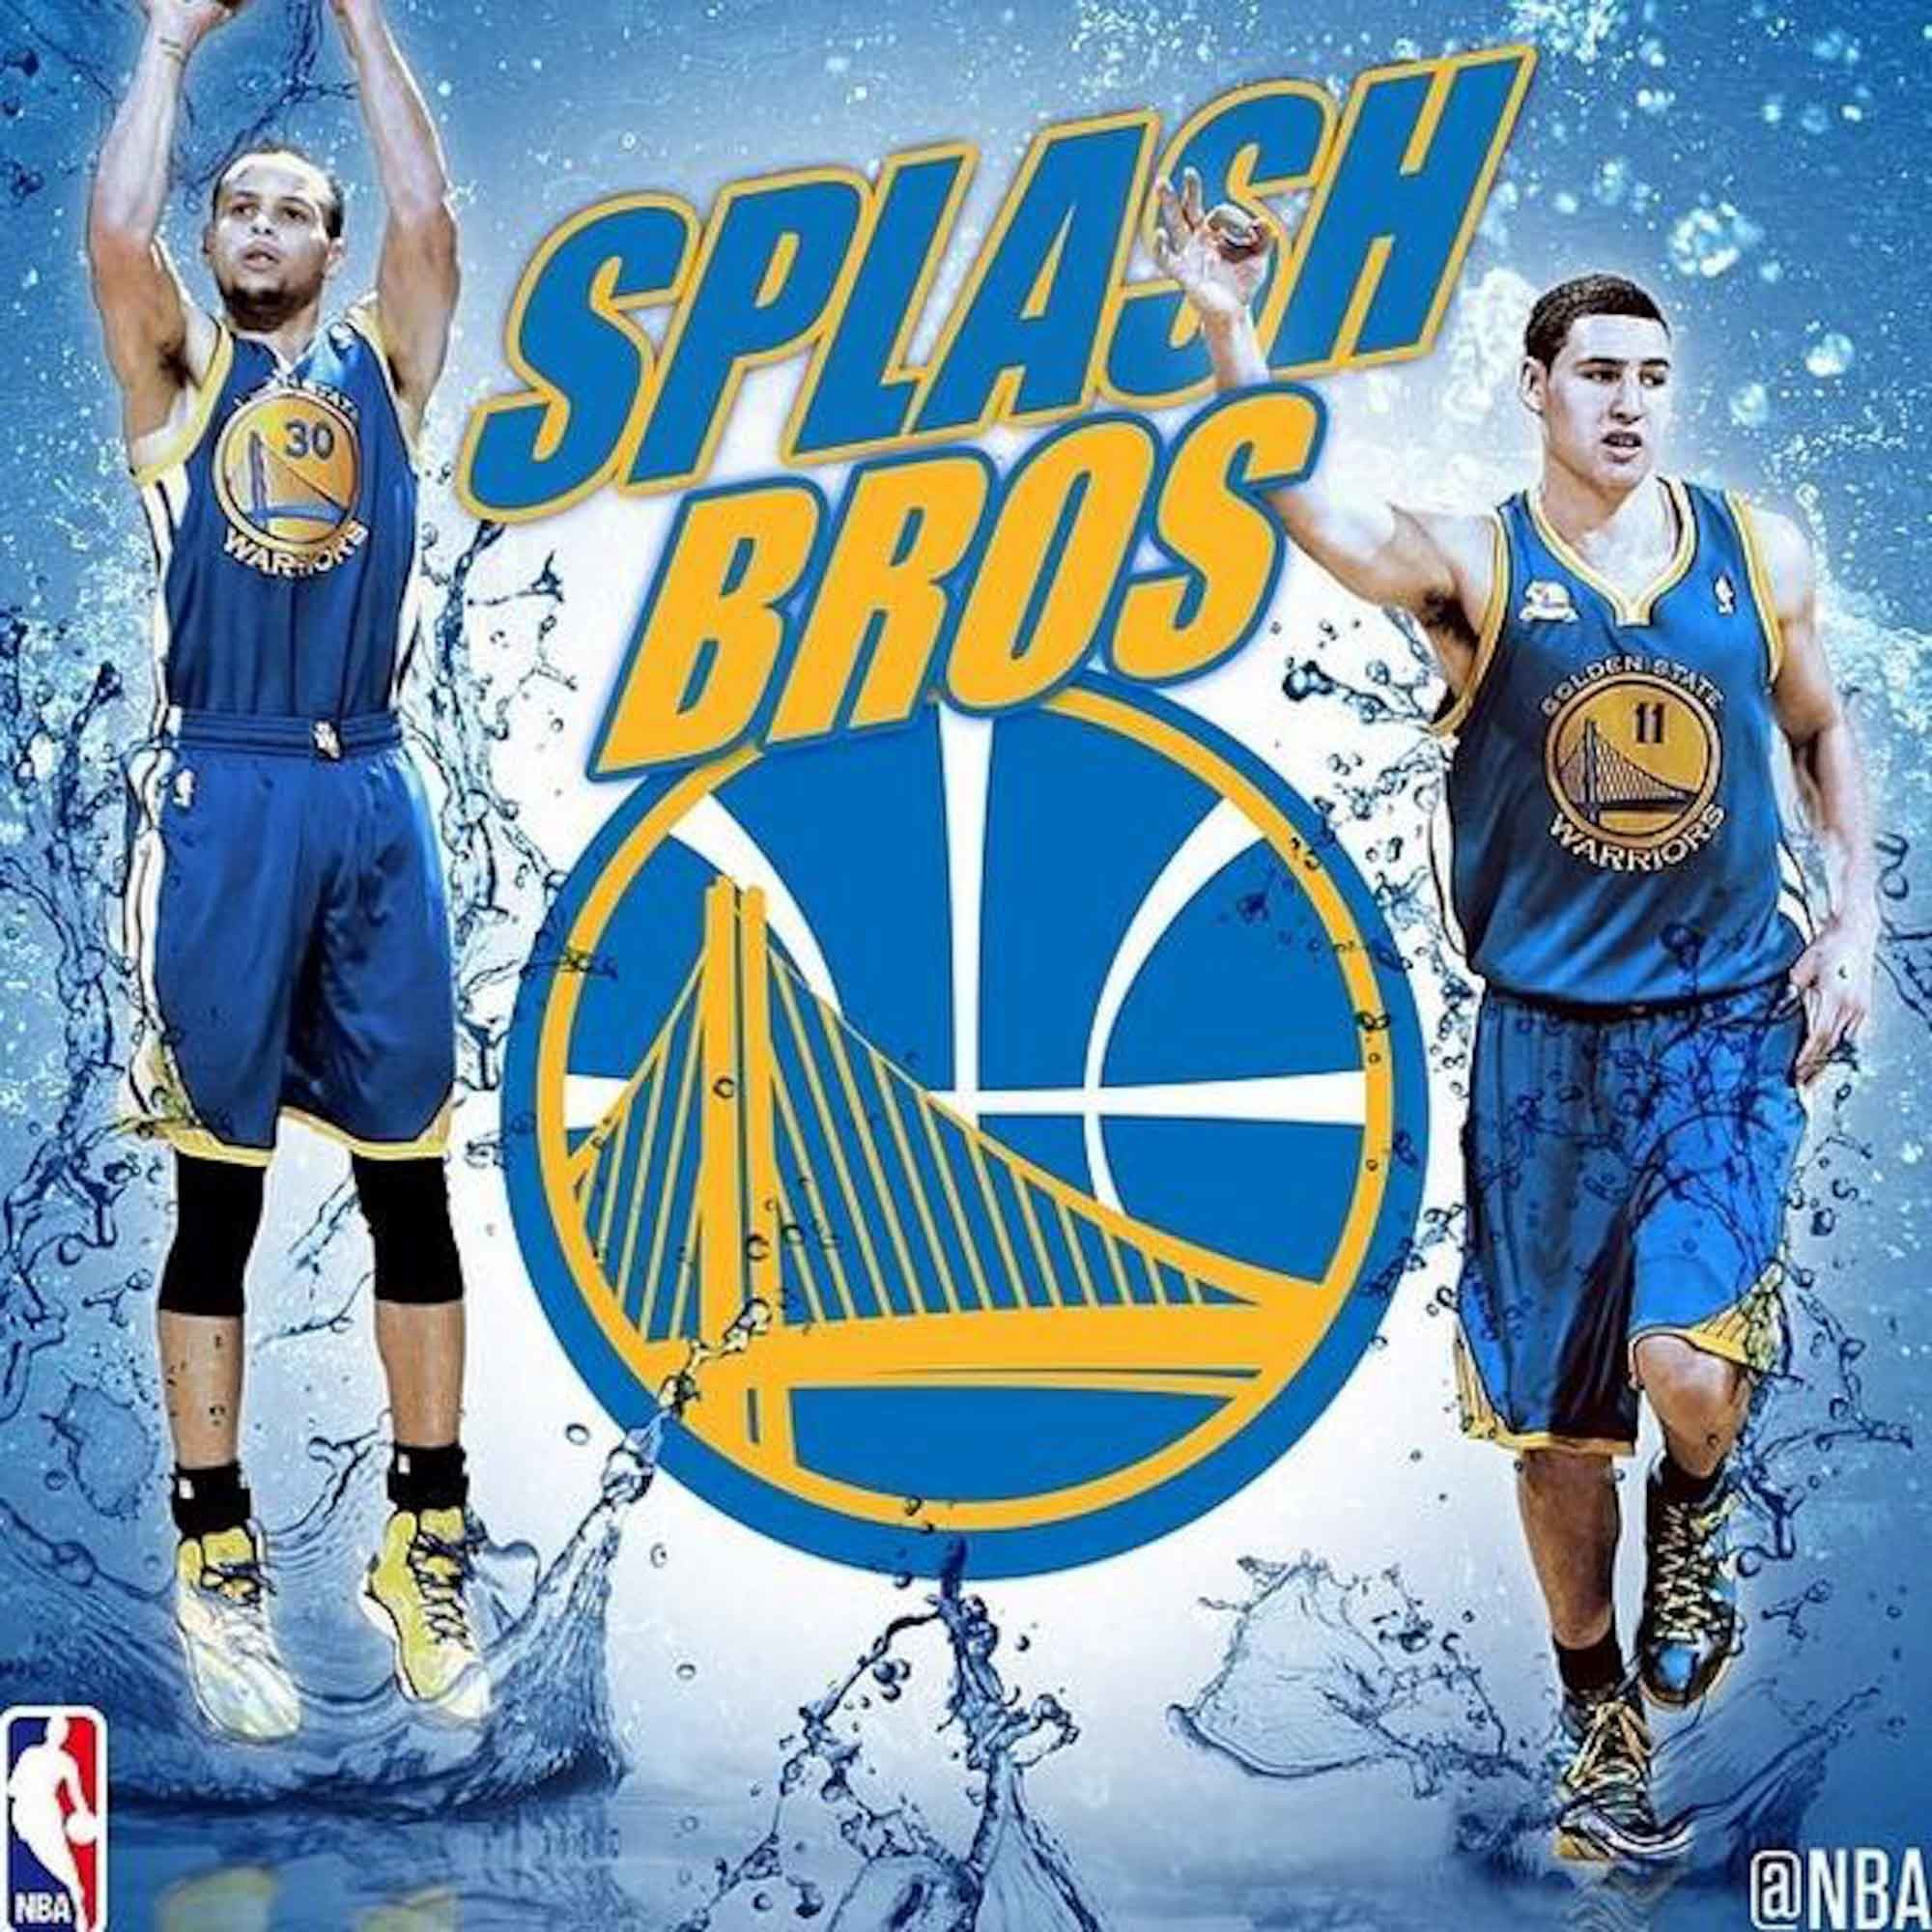 2000x2000 Splash Brothers Steph Curry & Klay Thompson.